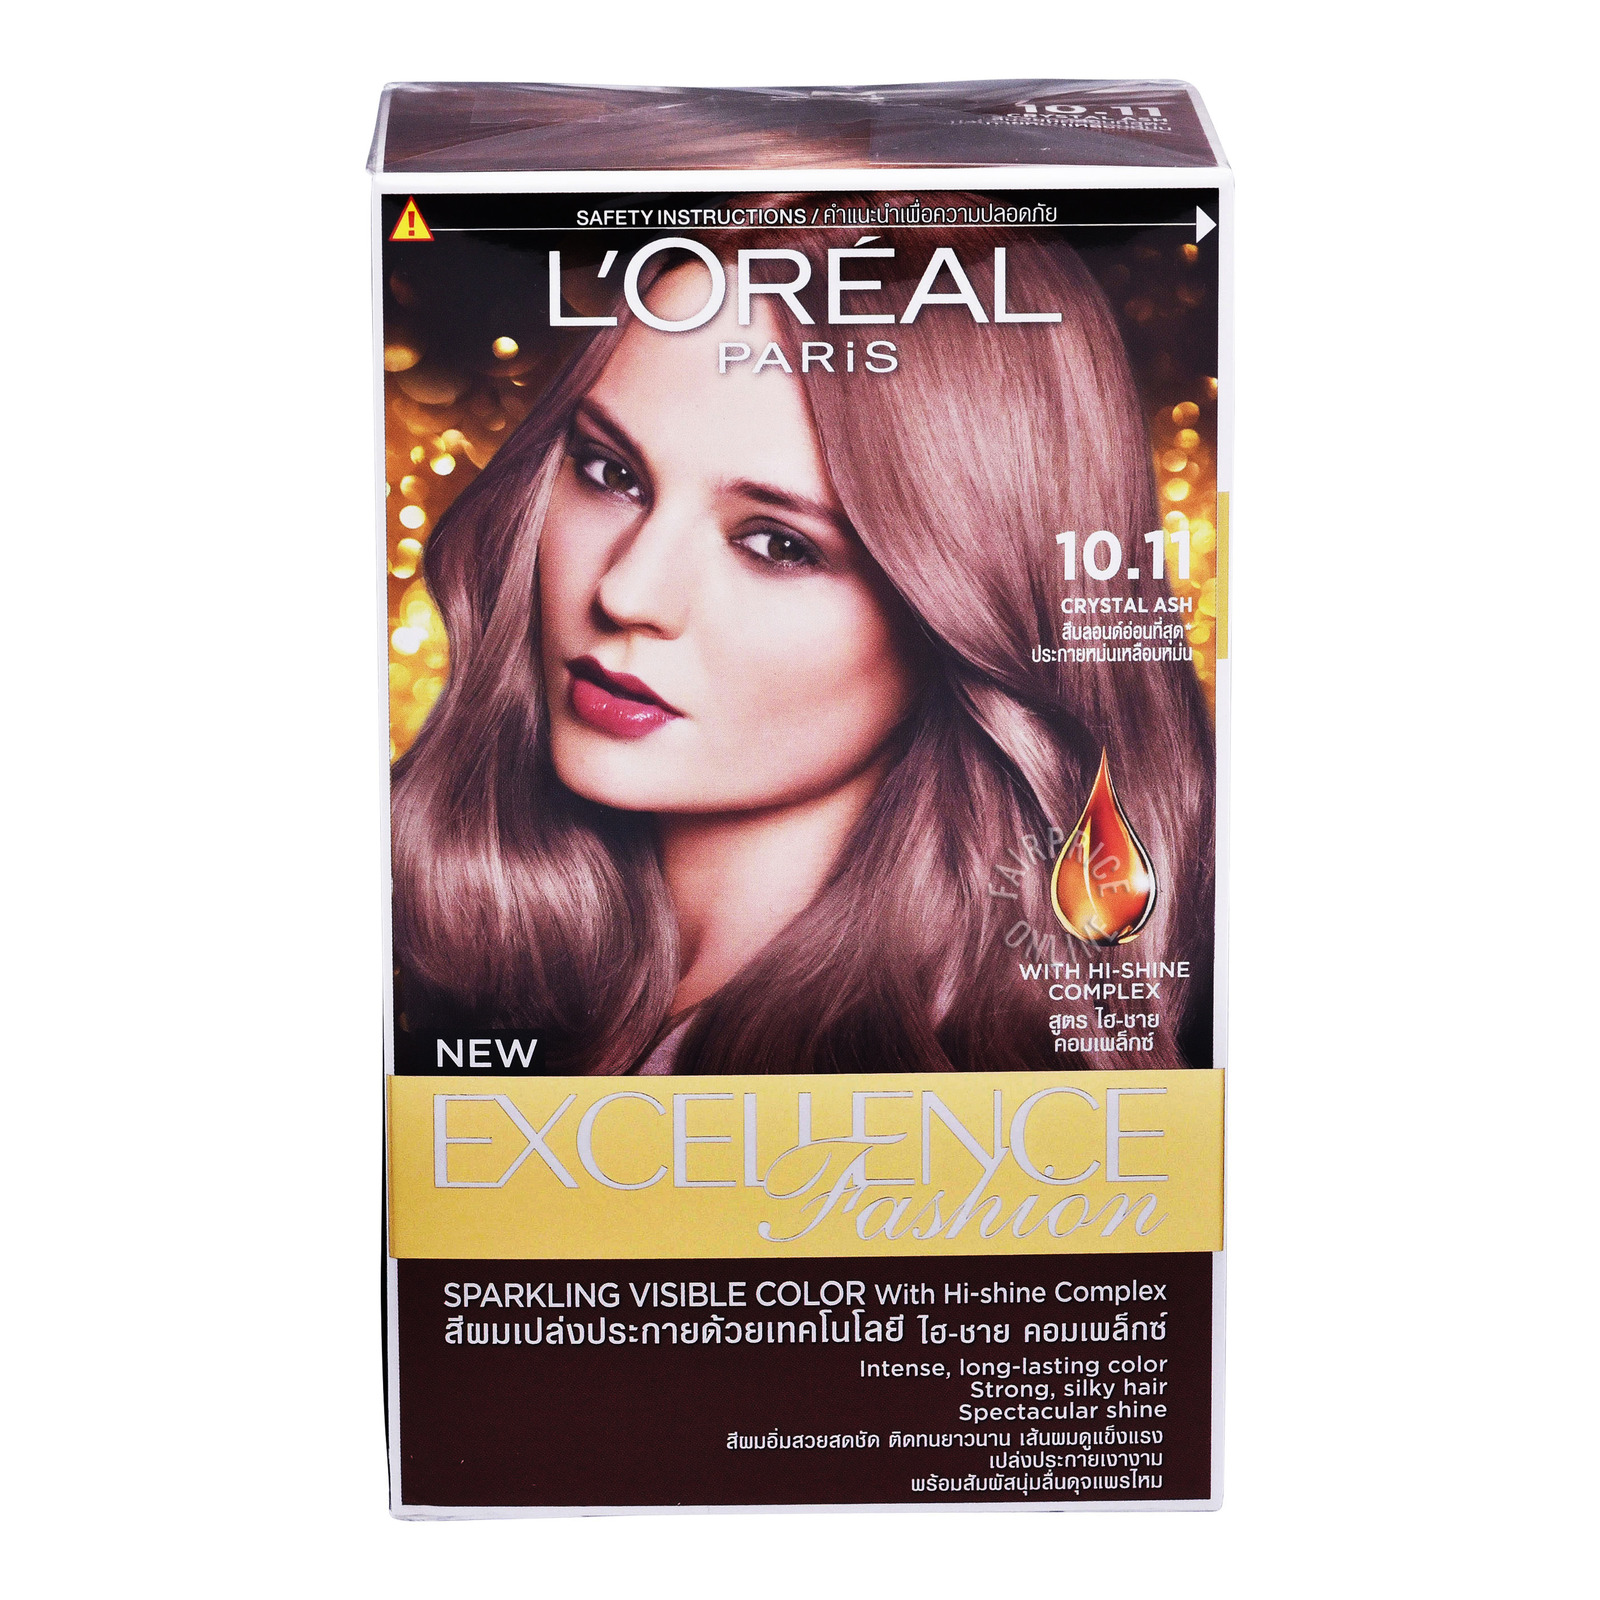 L'Oreal Paris New ExcellenceFashionHairDye-10.11CrystalAsh